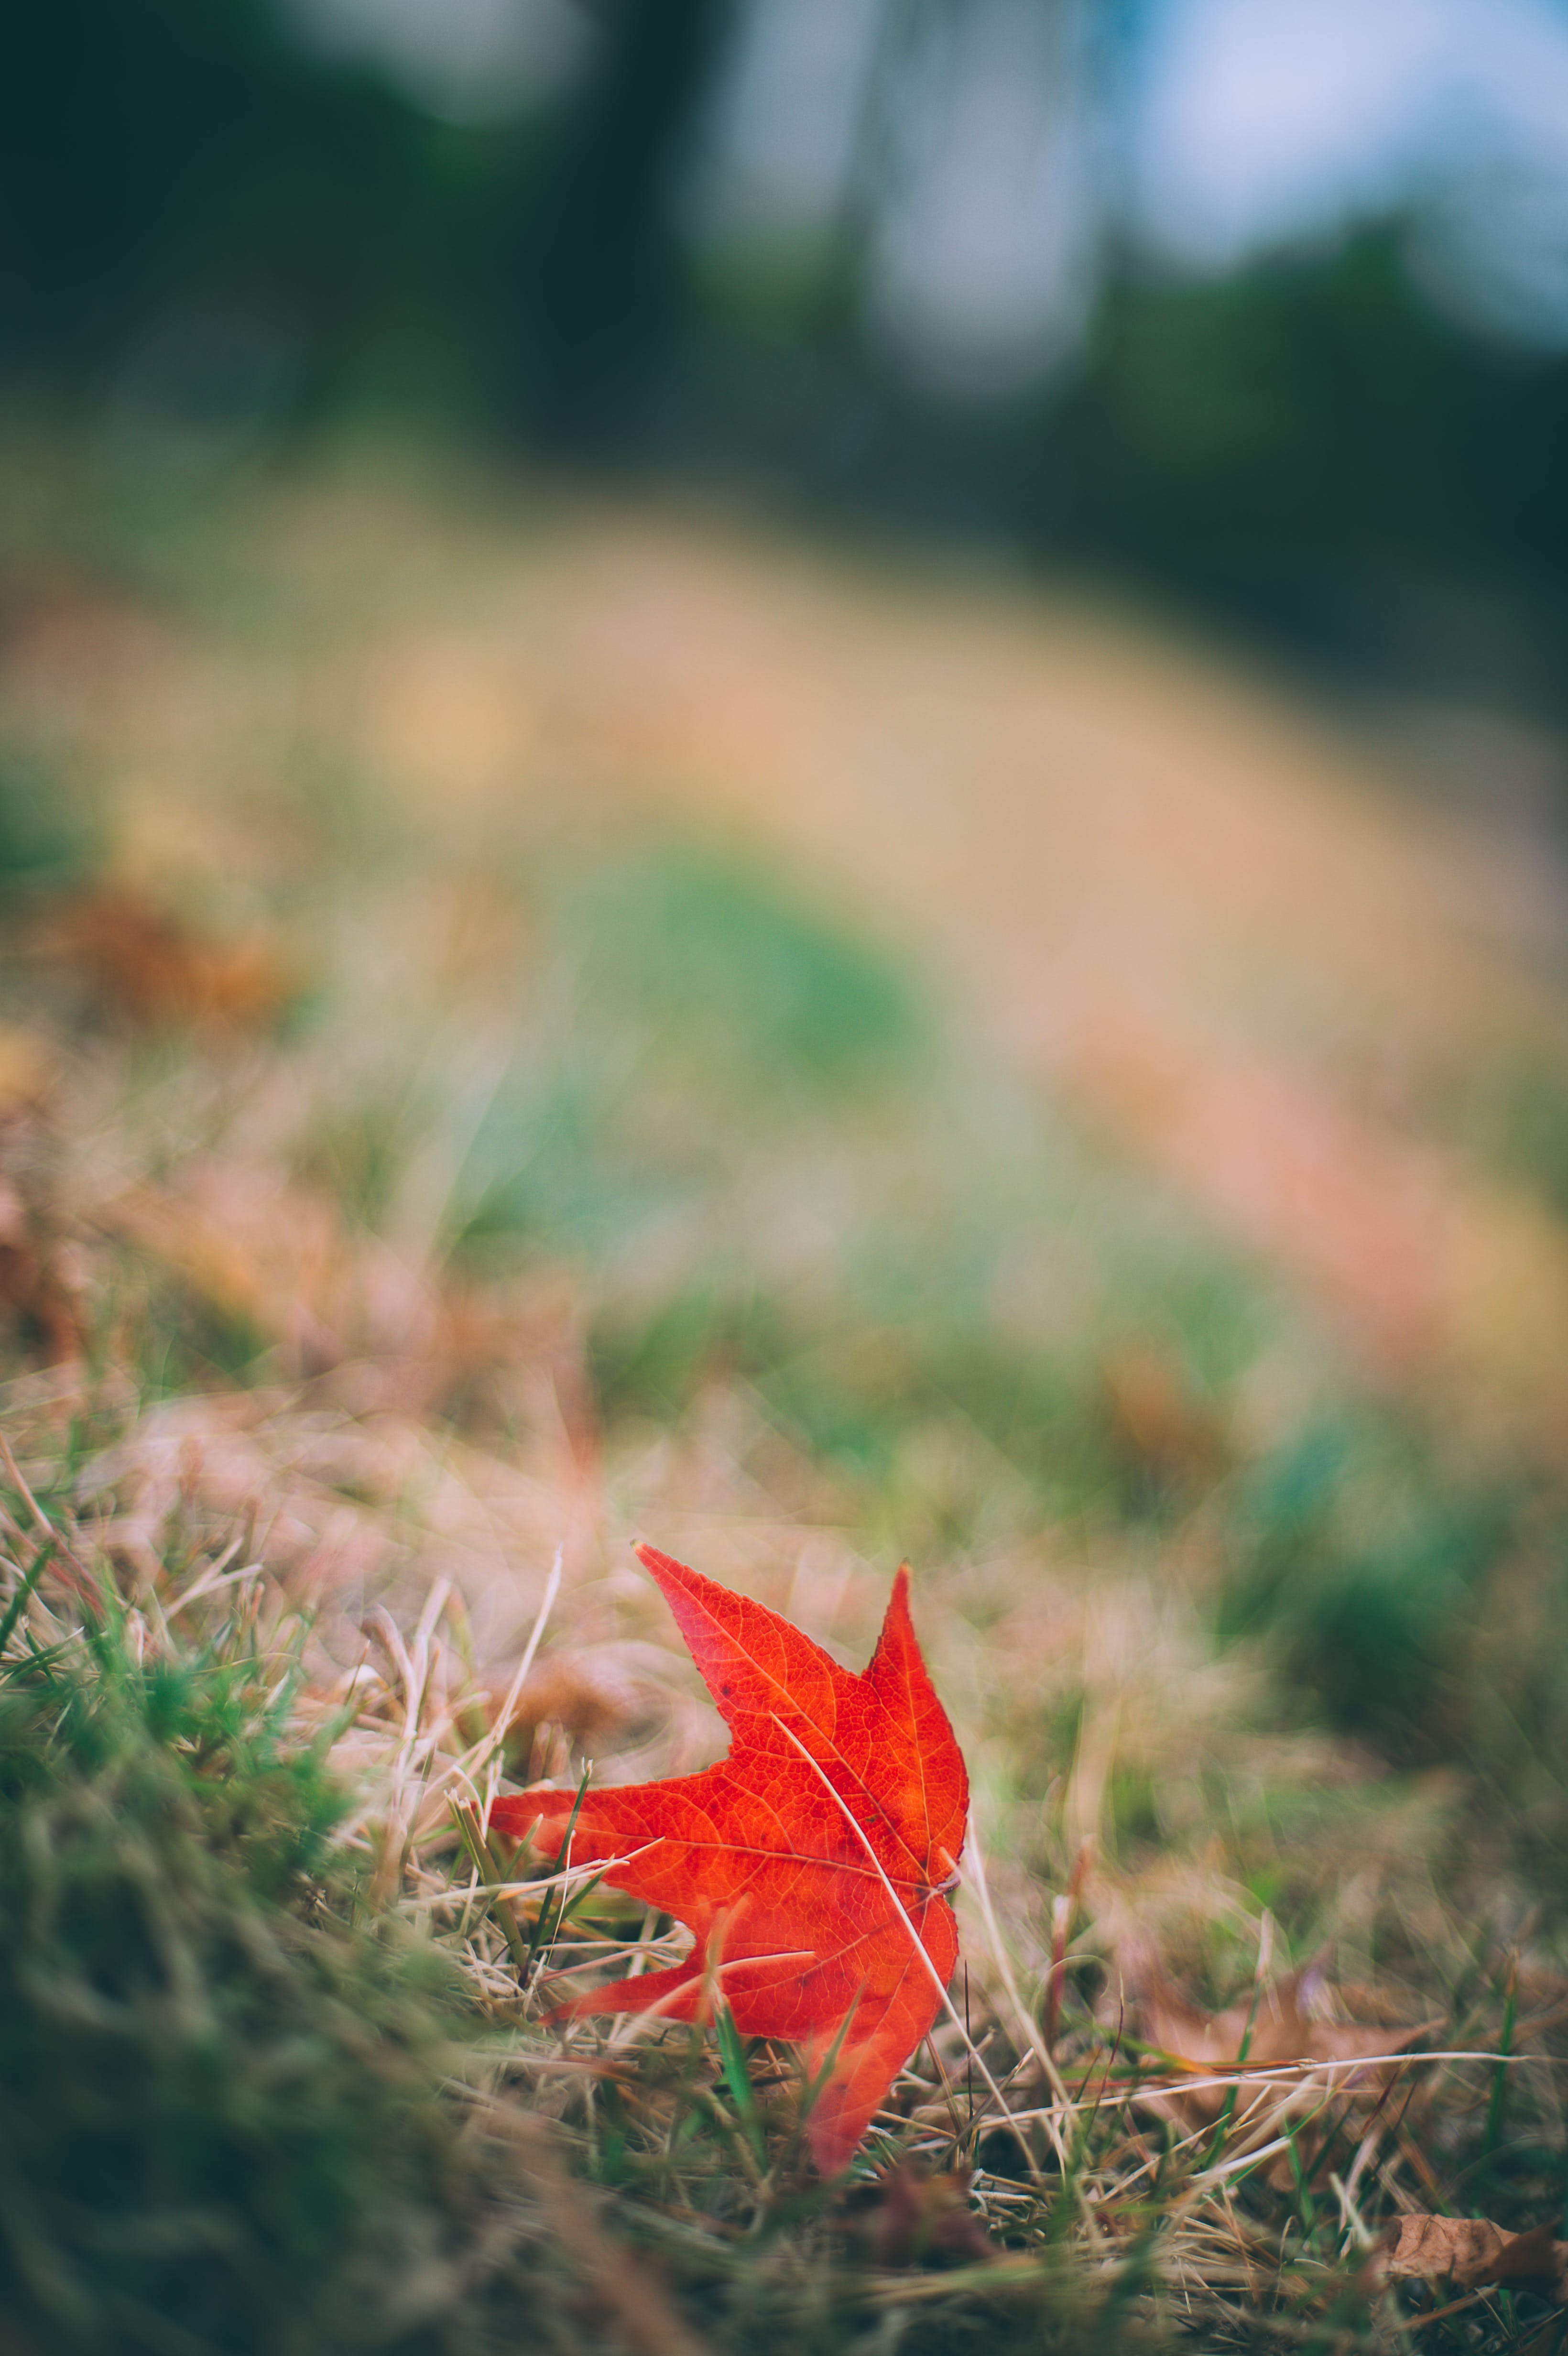 Free stock photo of autumn, maple leaves, red